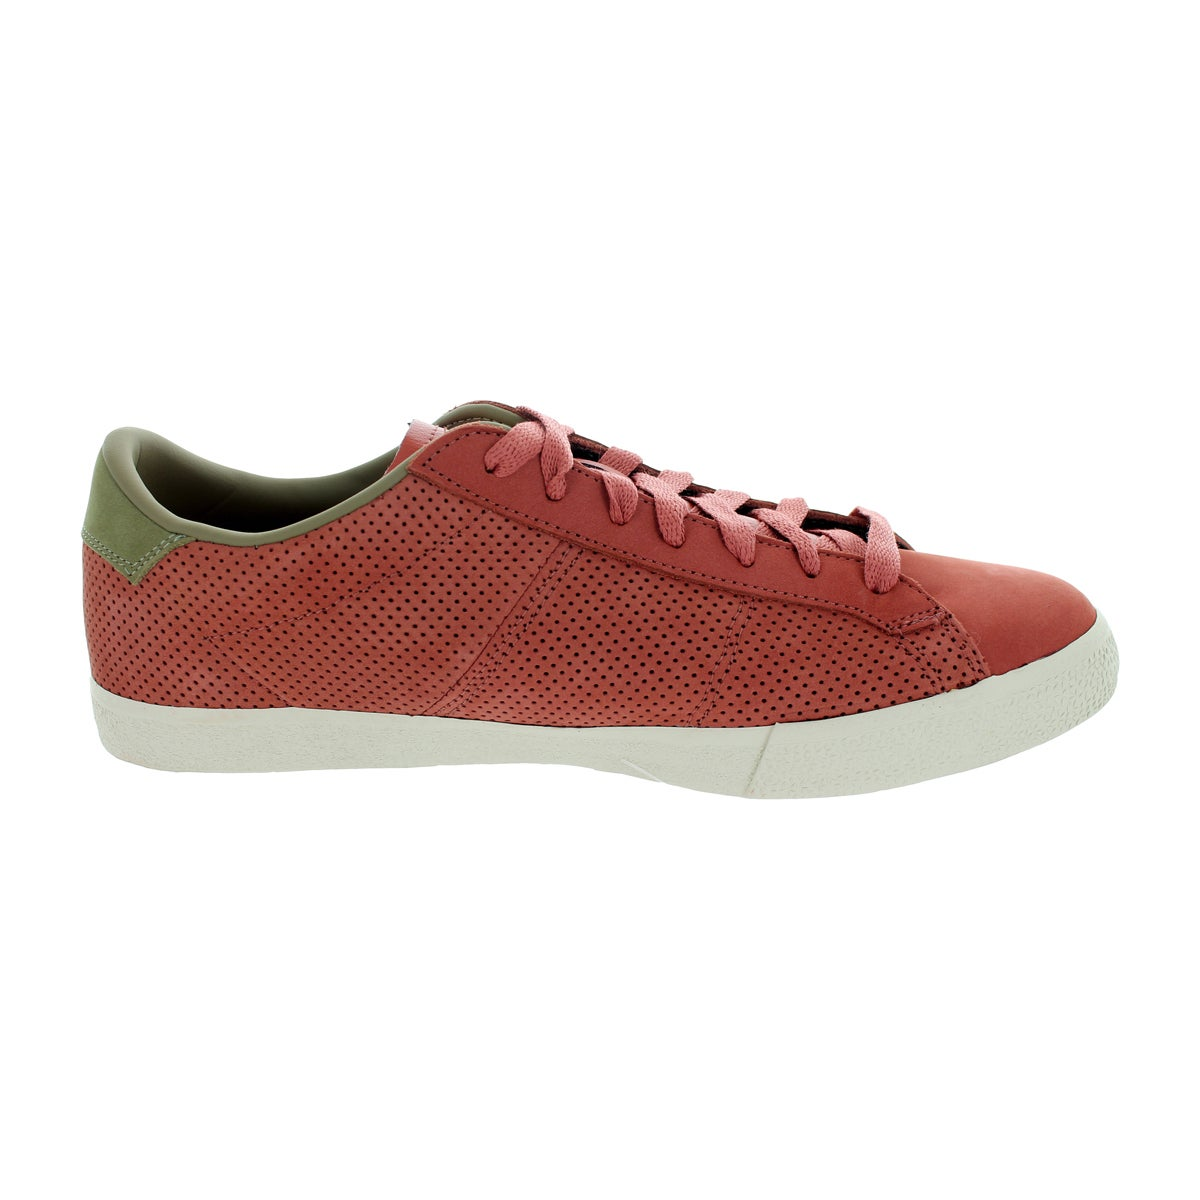 Onitsuka Tiger Unisex Lawnship Red Casual Shoe - Free Shipping Today -  Overstock.com - 19001498